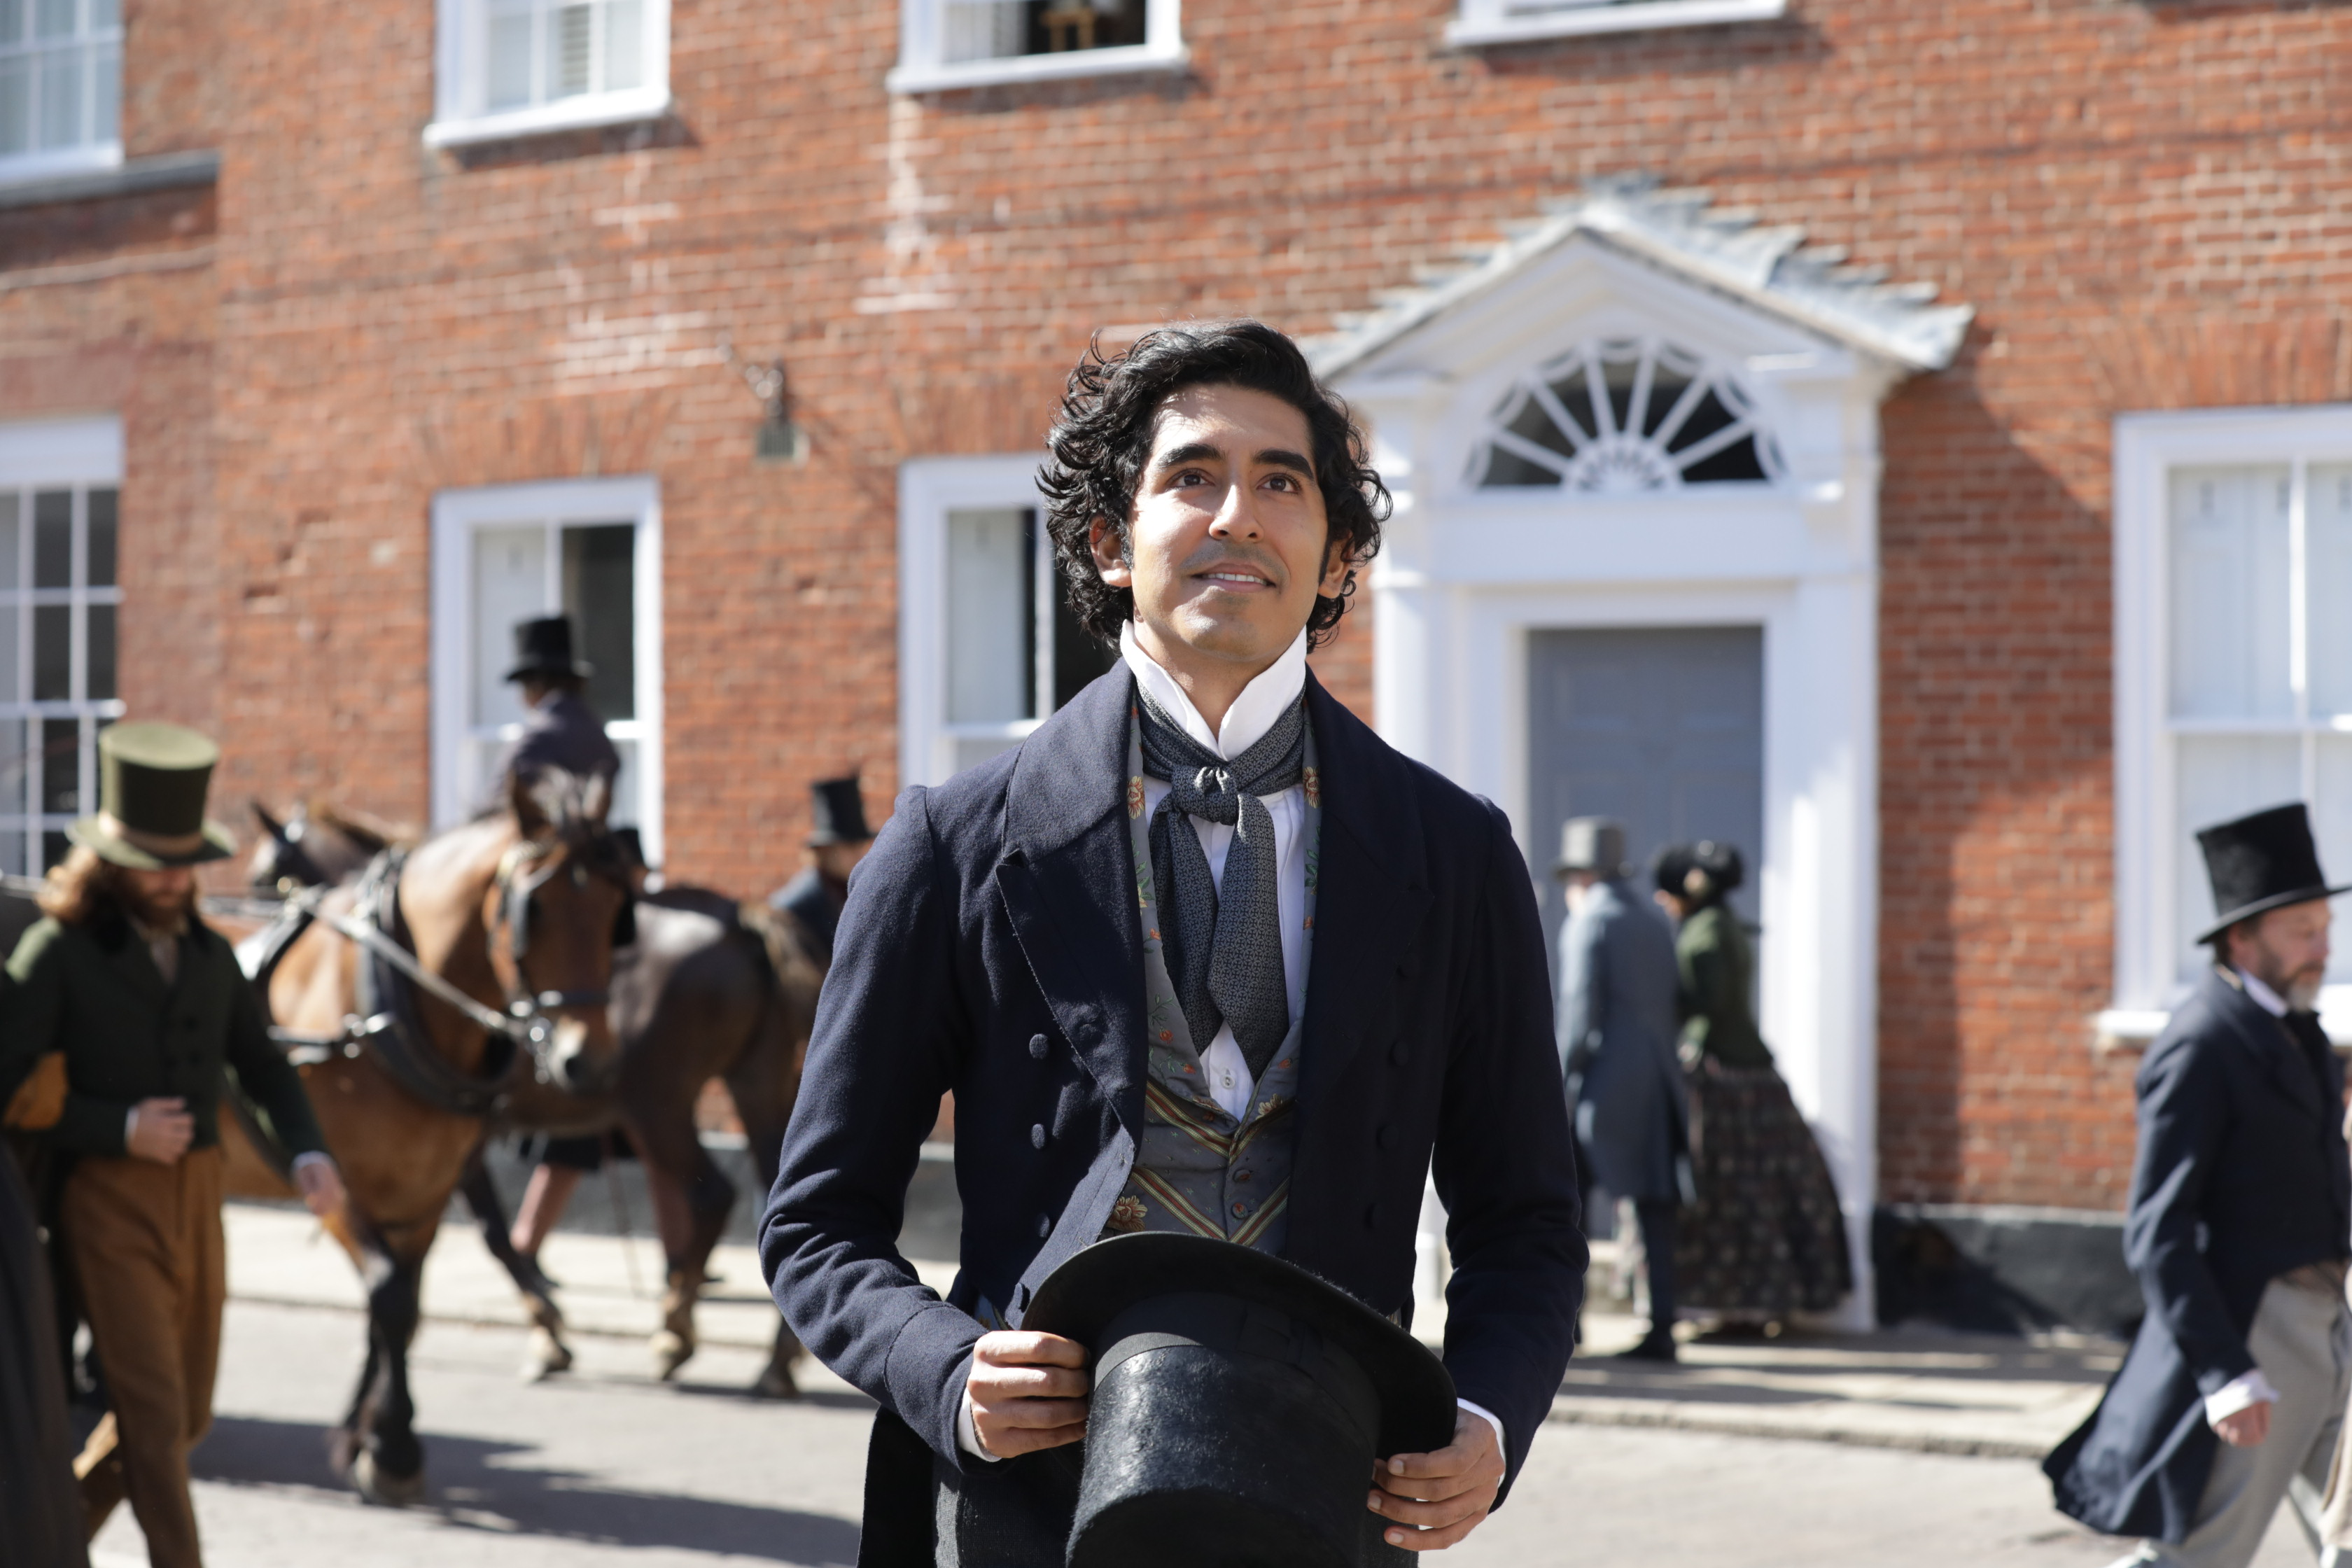 Dev Patel in 'The Personal History of David Copperfield'